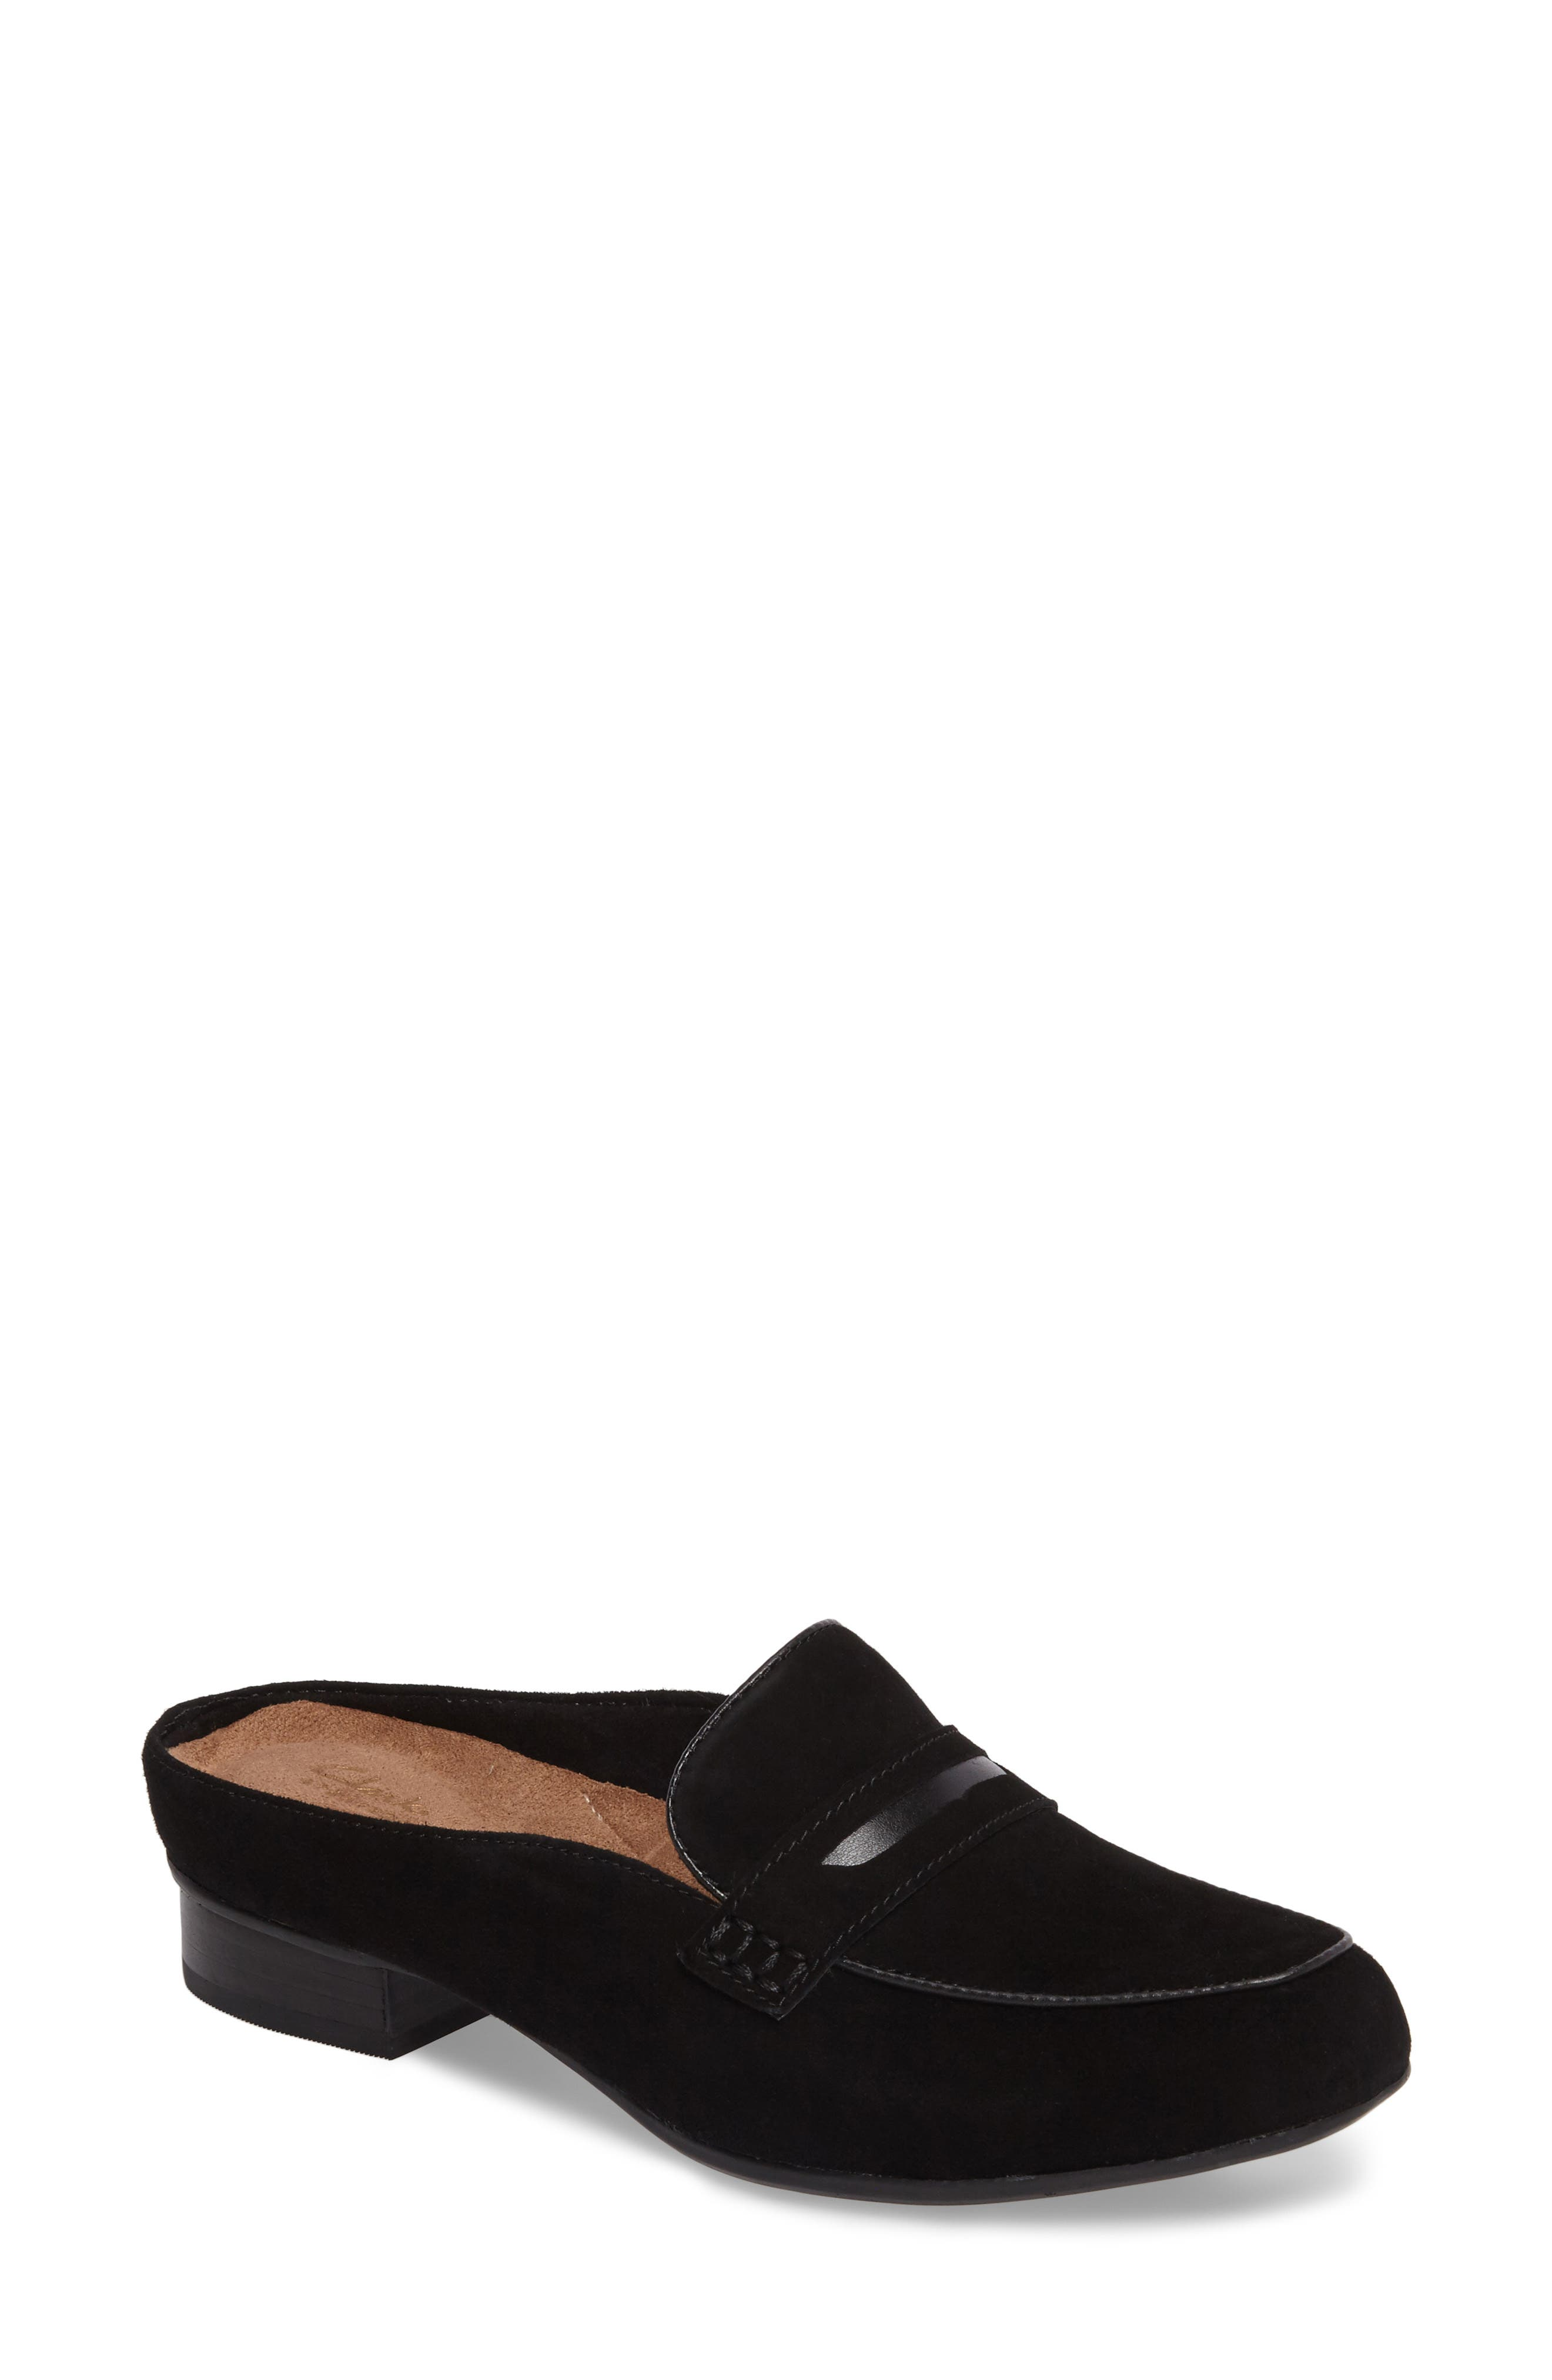 Keesha Donna Loafer Mule,                             Main thumbnail 1, color,                             Black Suede